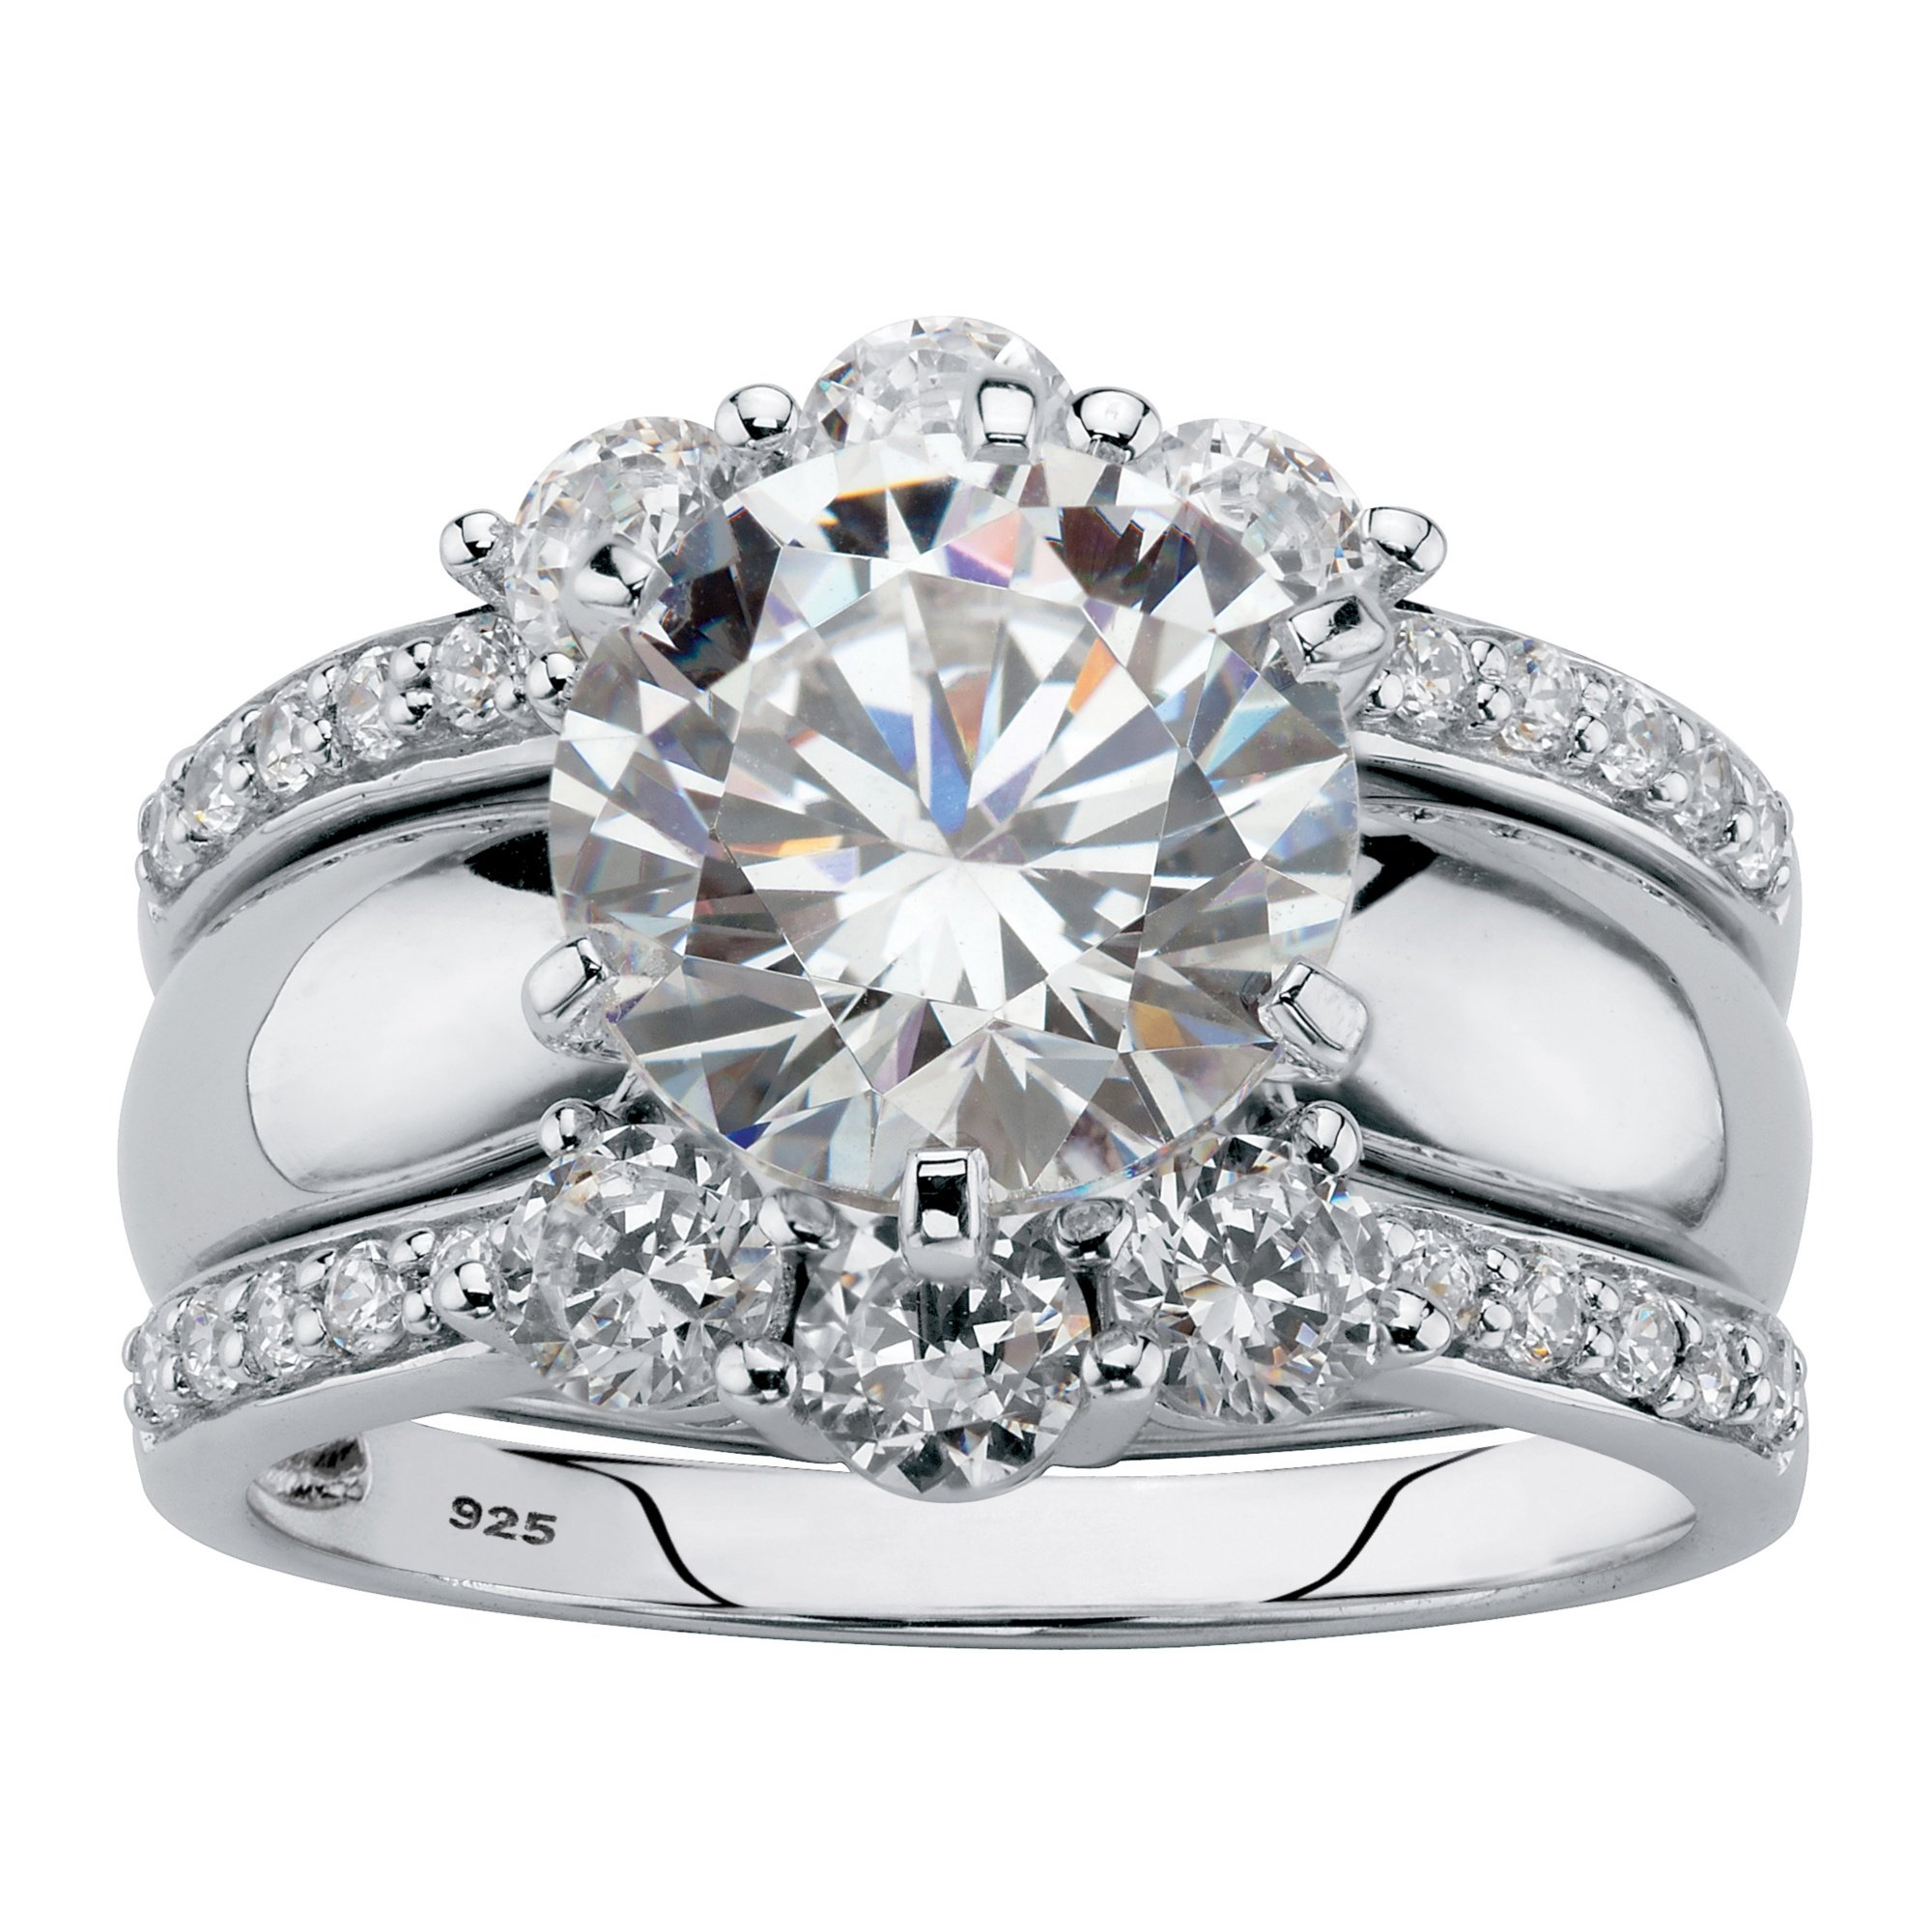 Platinum over Sterling Silver Round Cubic Zirconia Jacket Wedding Ring Set Size 6